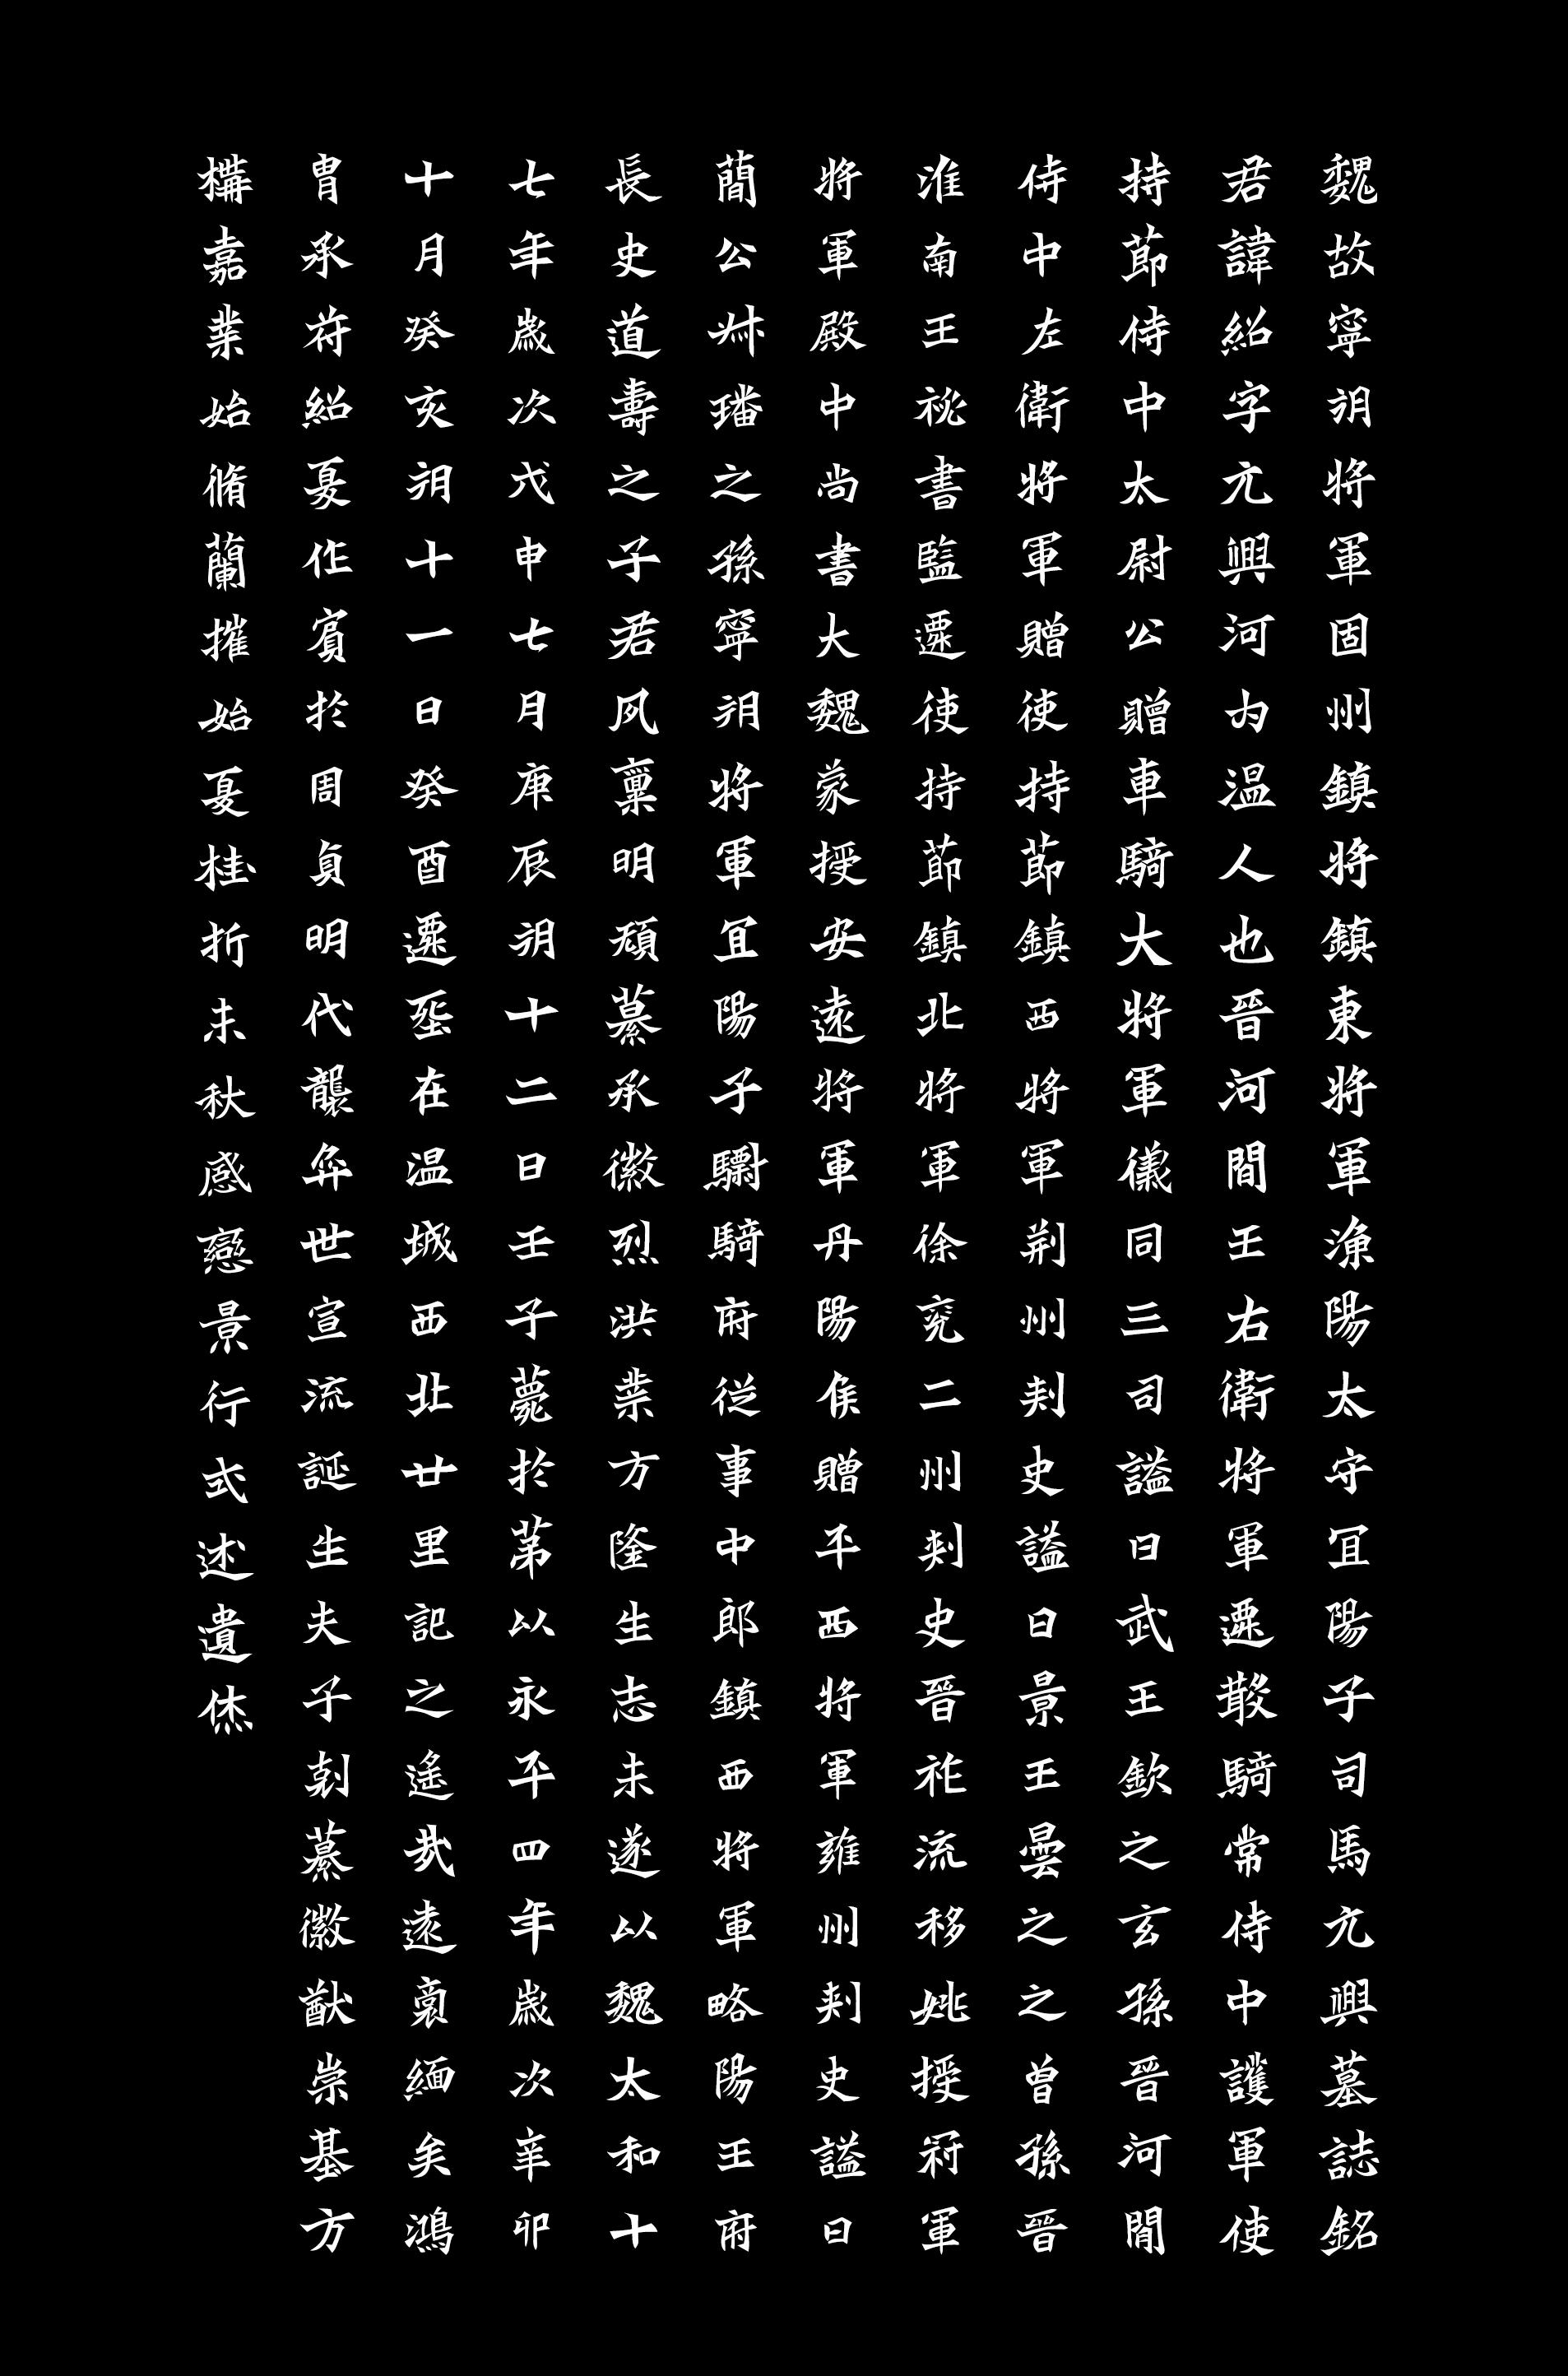 Interesting Chinese Creative Font Design-The Epitaph of Si Mashao in Northern Wei Dynasty